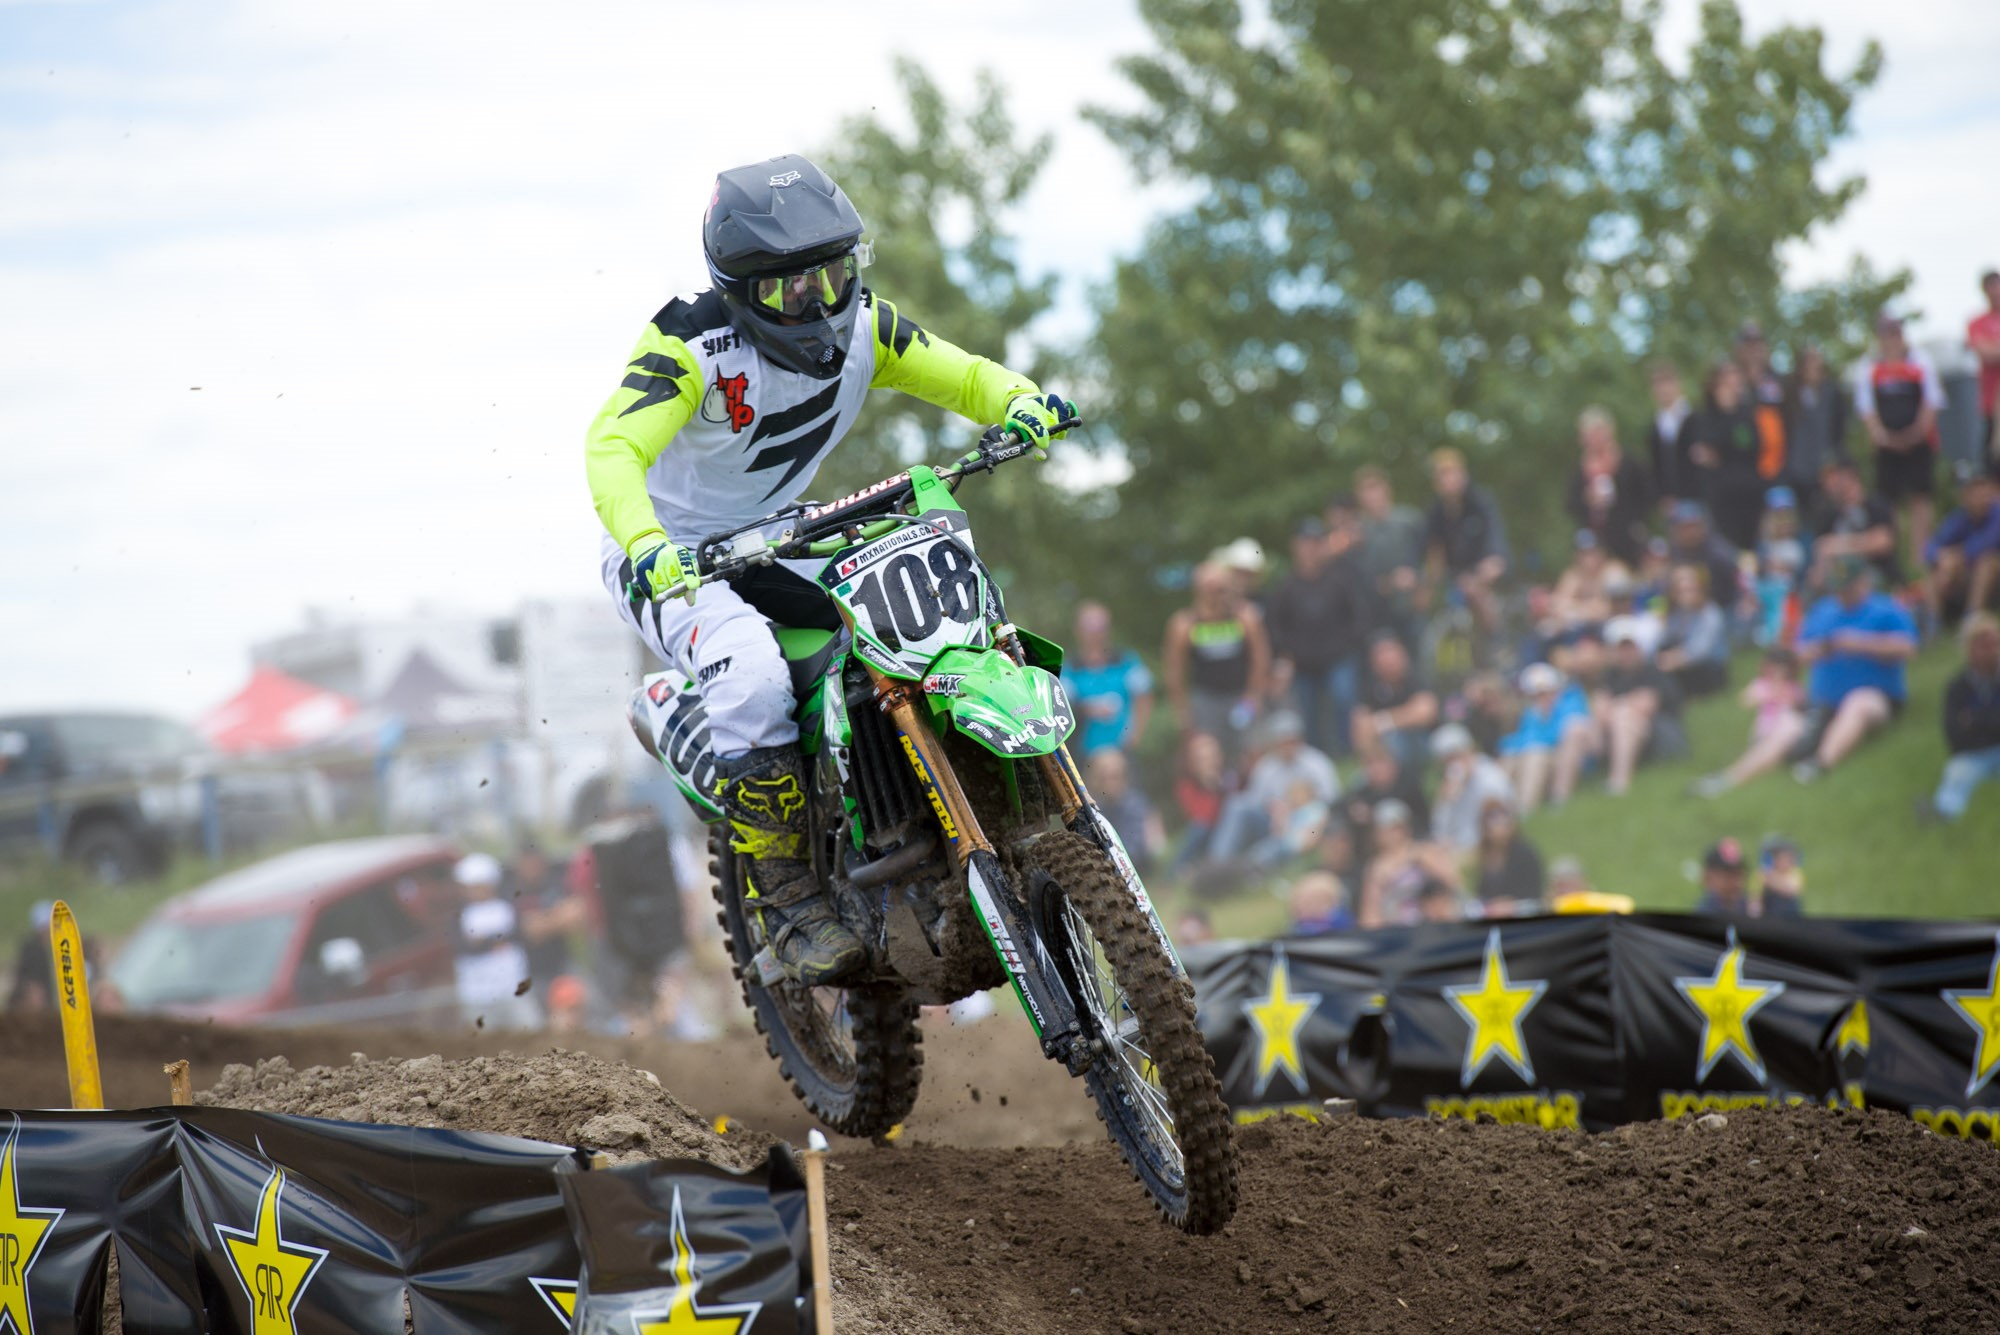 Nut Up Industries Kawasaki's Dillan Epstein led every lap of the first moto for the wire to wire win.